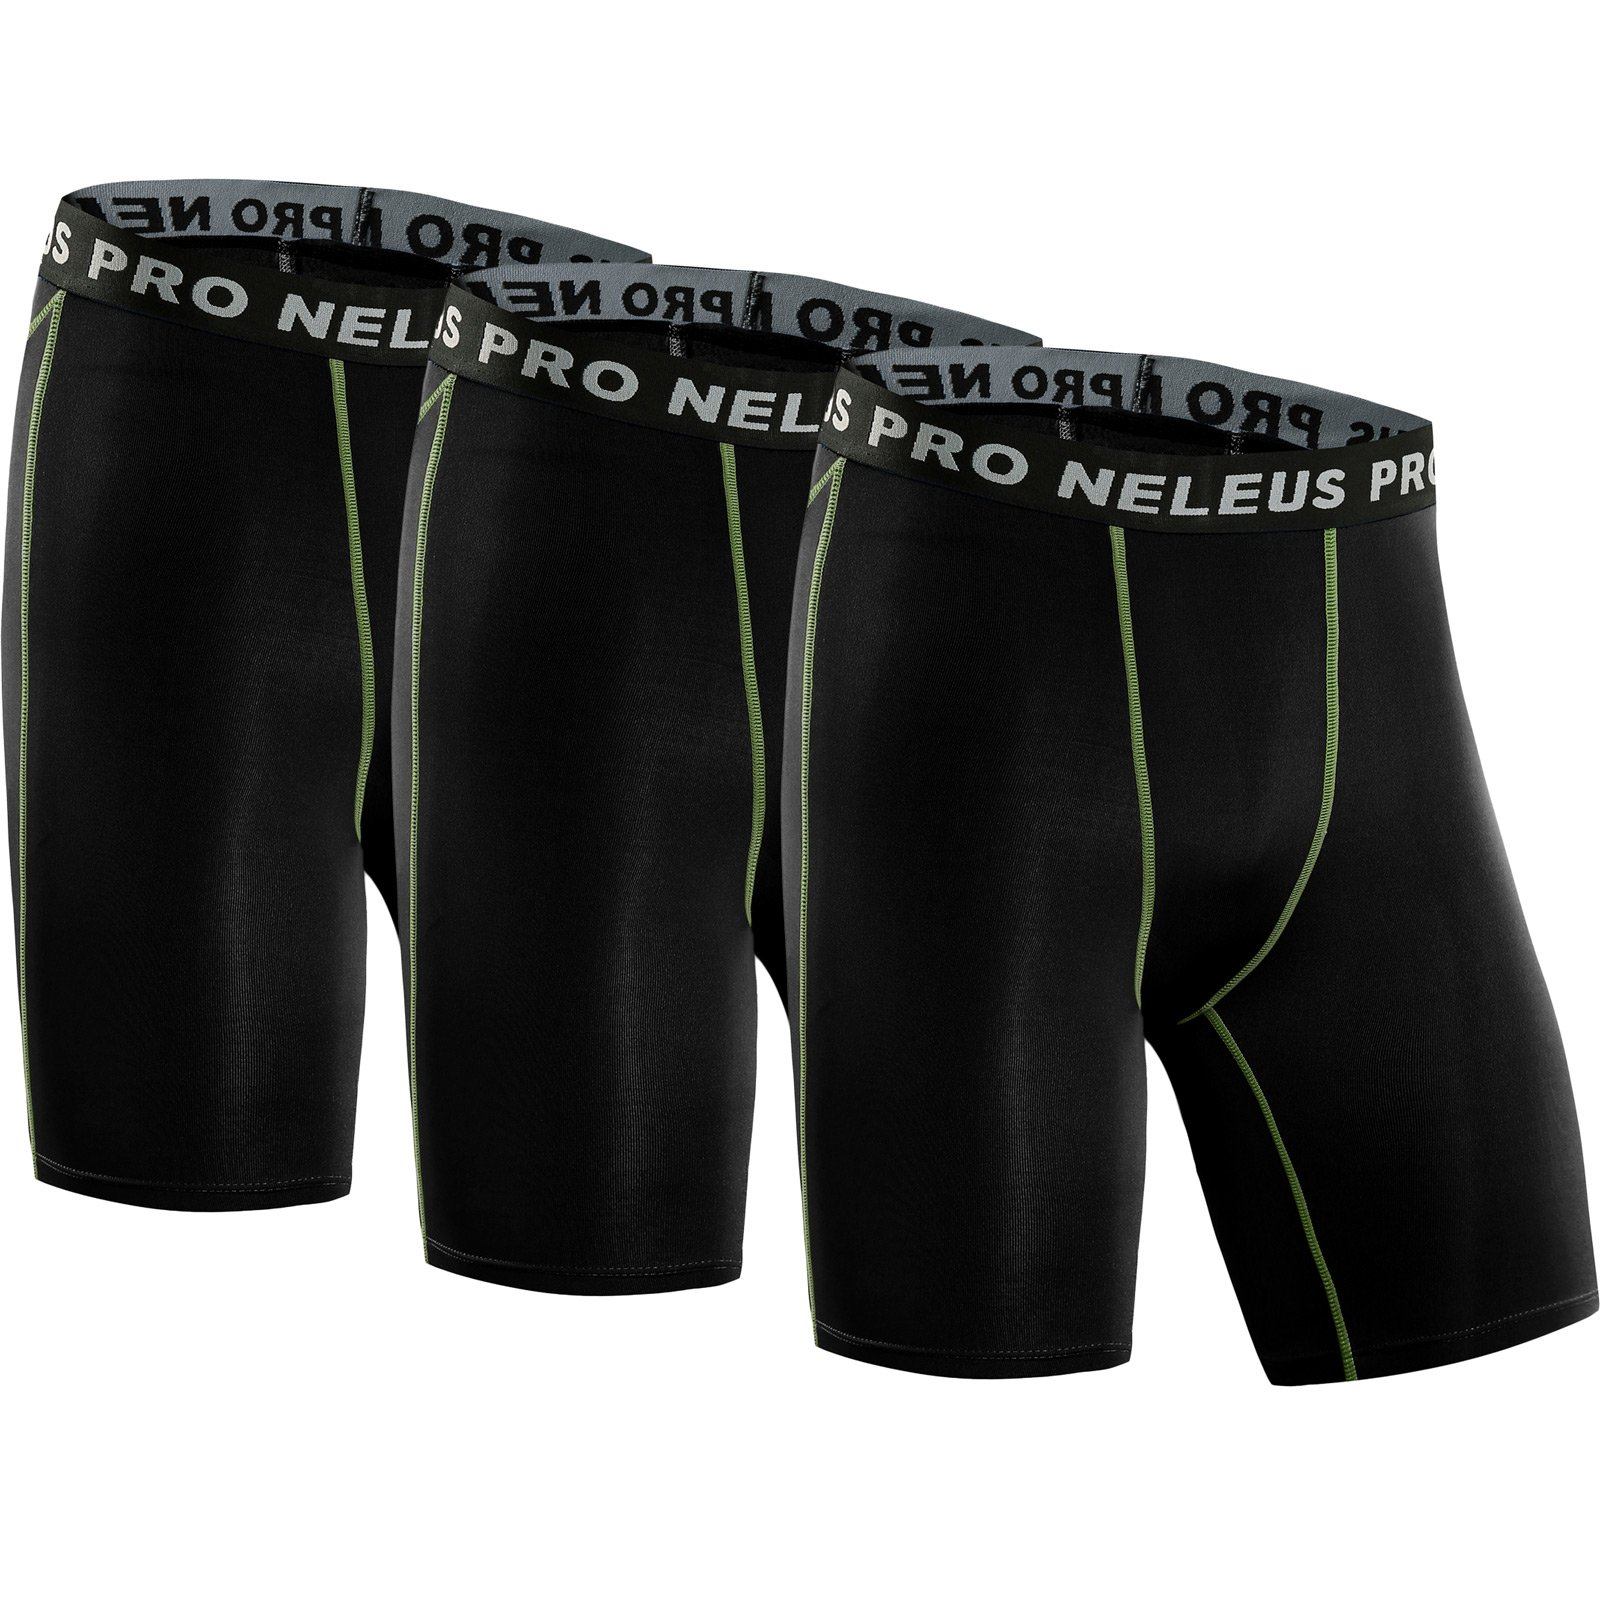 Neleus Men's 3 Pack Compression Short,047,Black,US XS,EU S